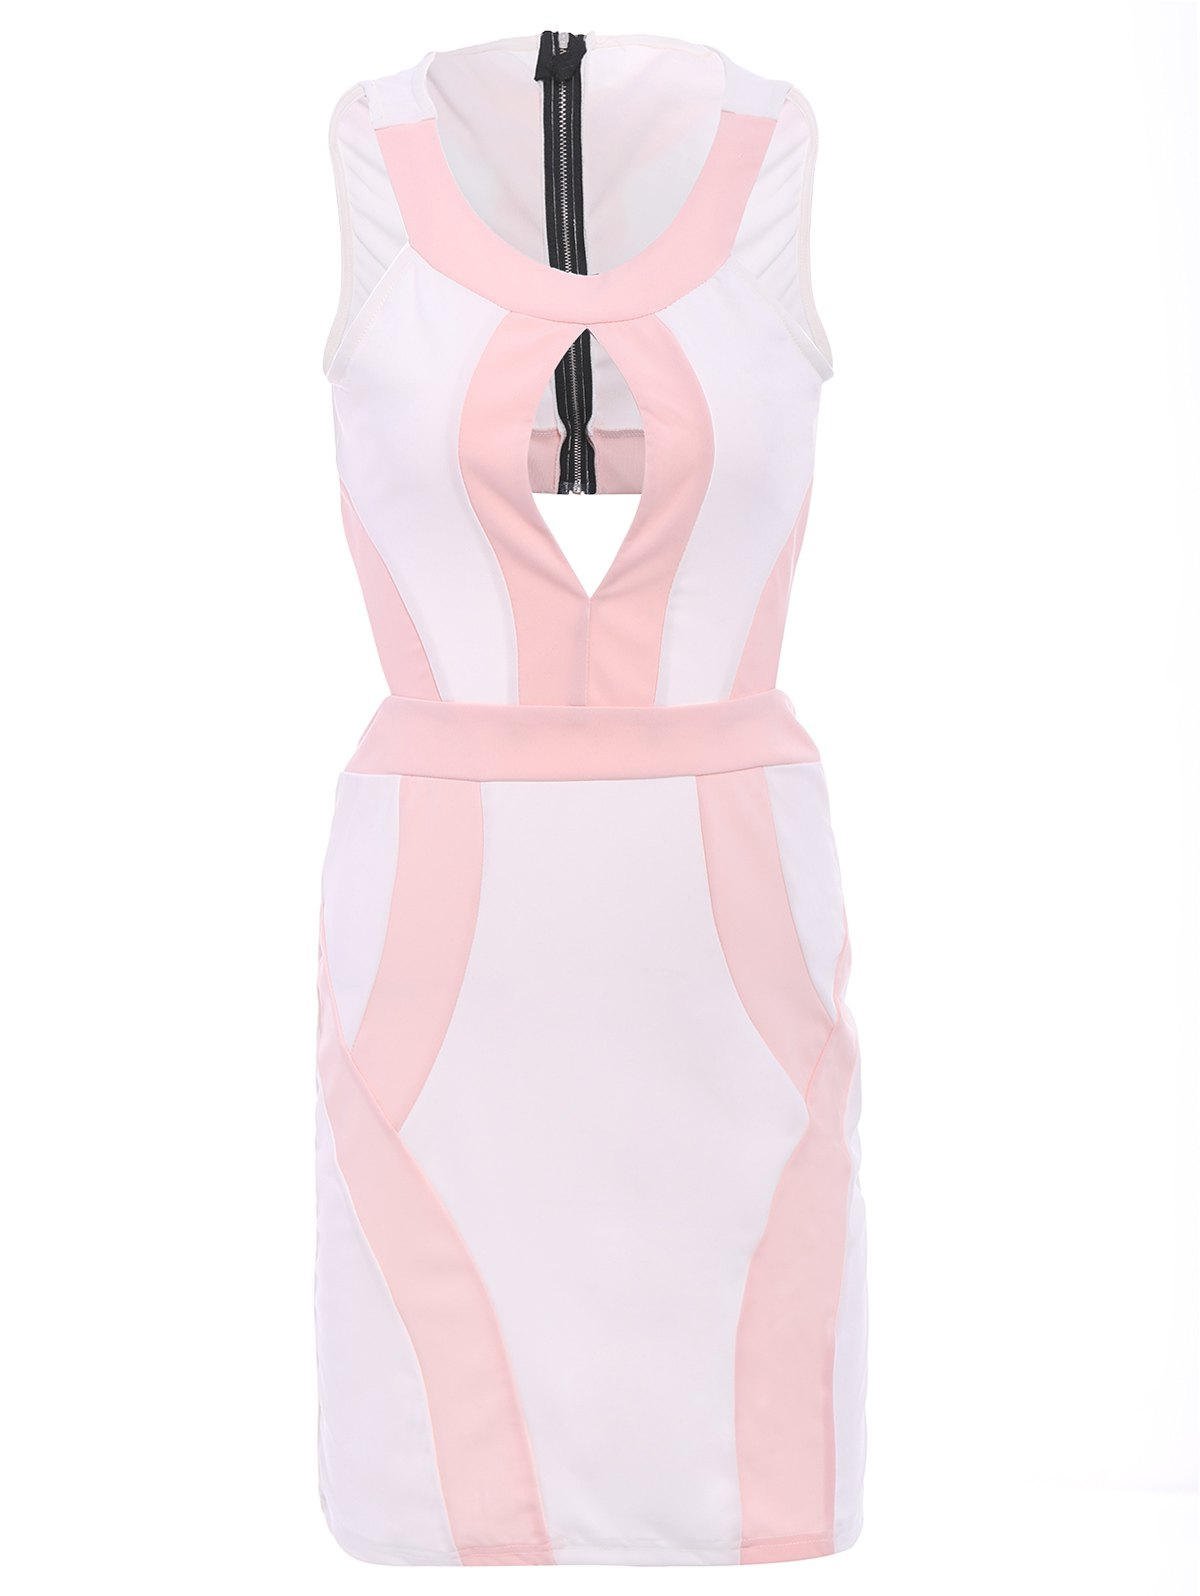 Alluring Women's Scoop Neck Sleeveless Hollow Out Color Block Dress - PINK M